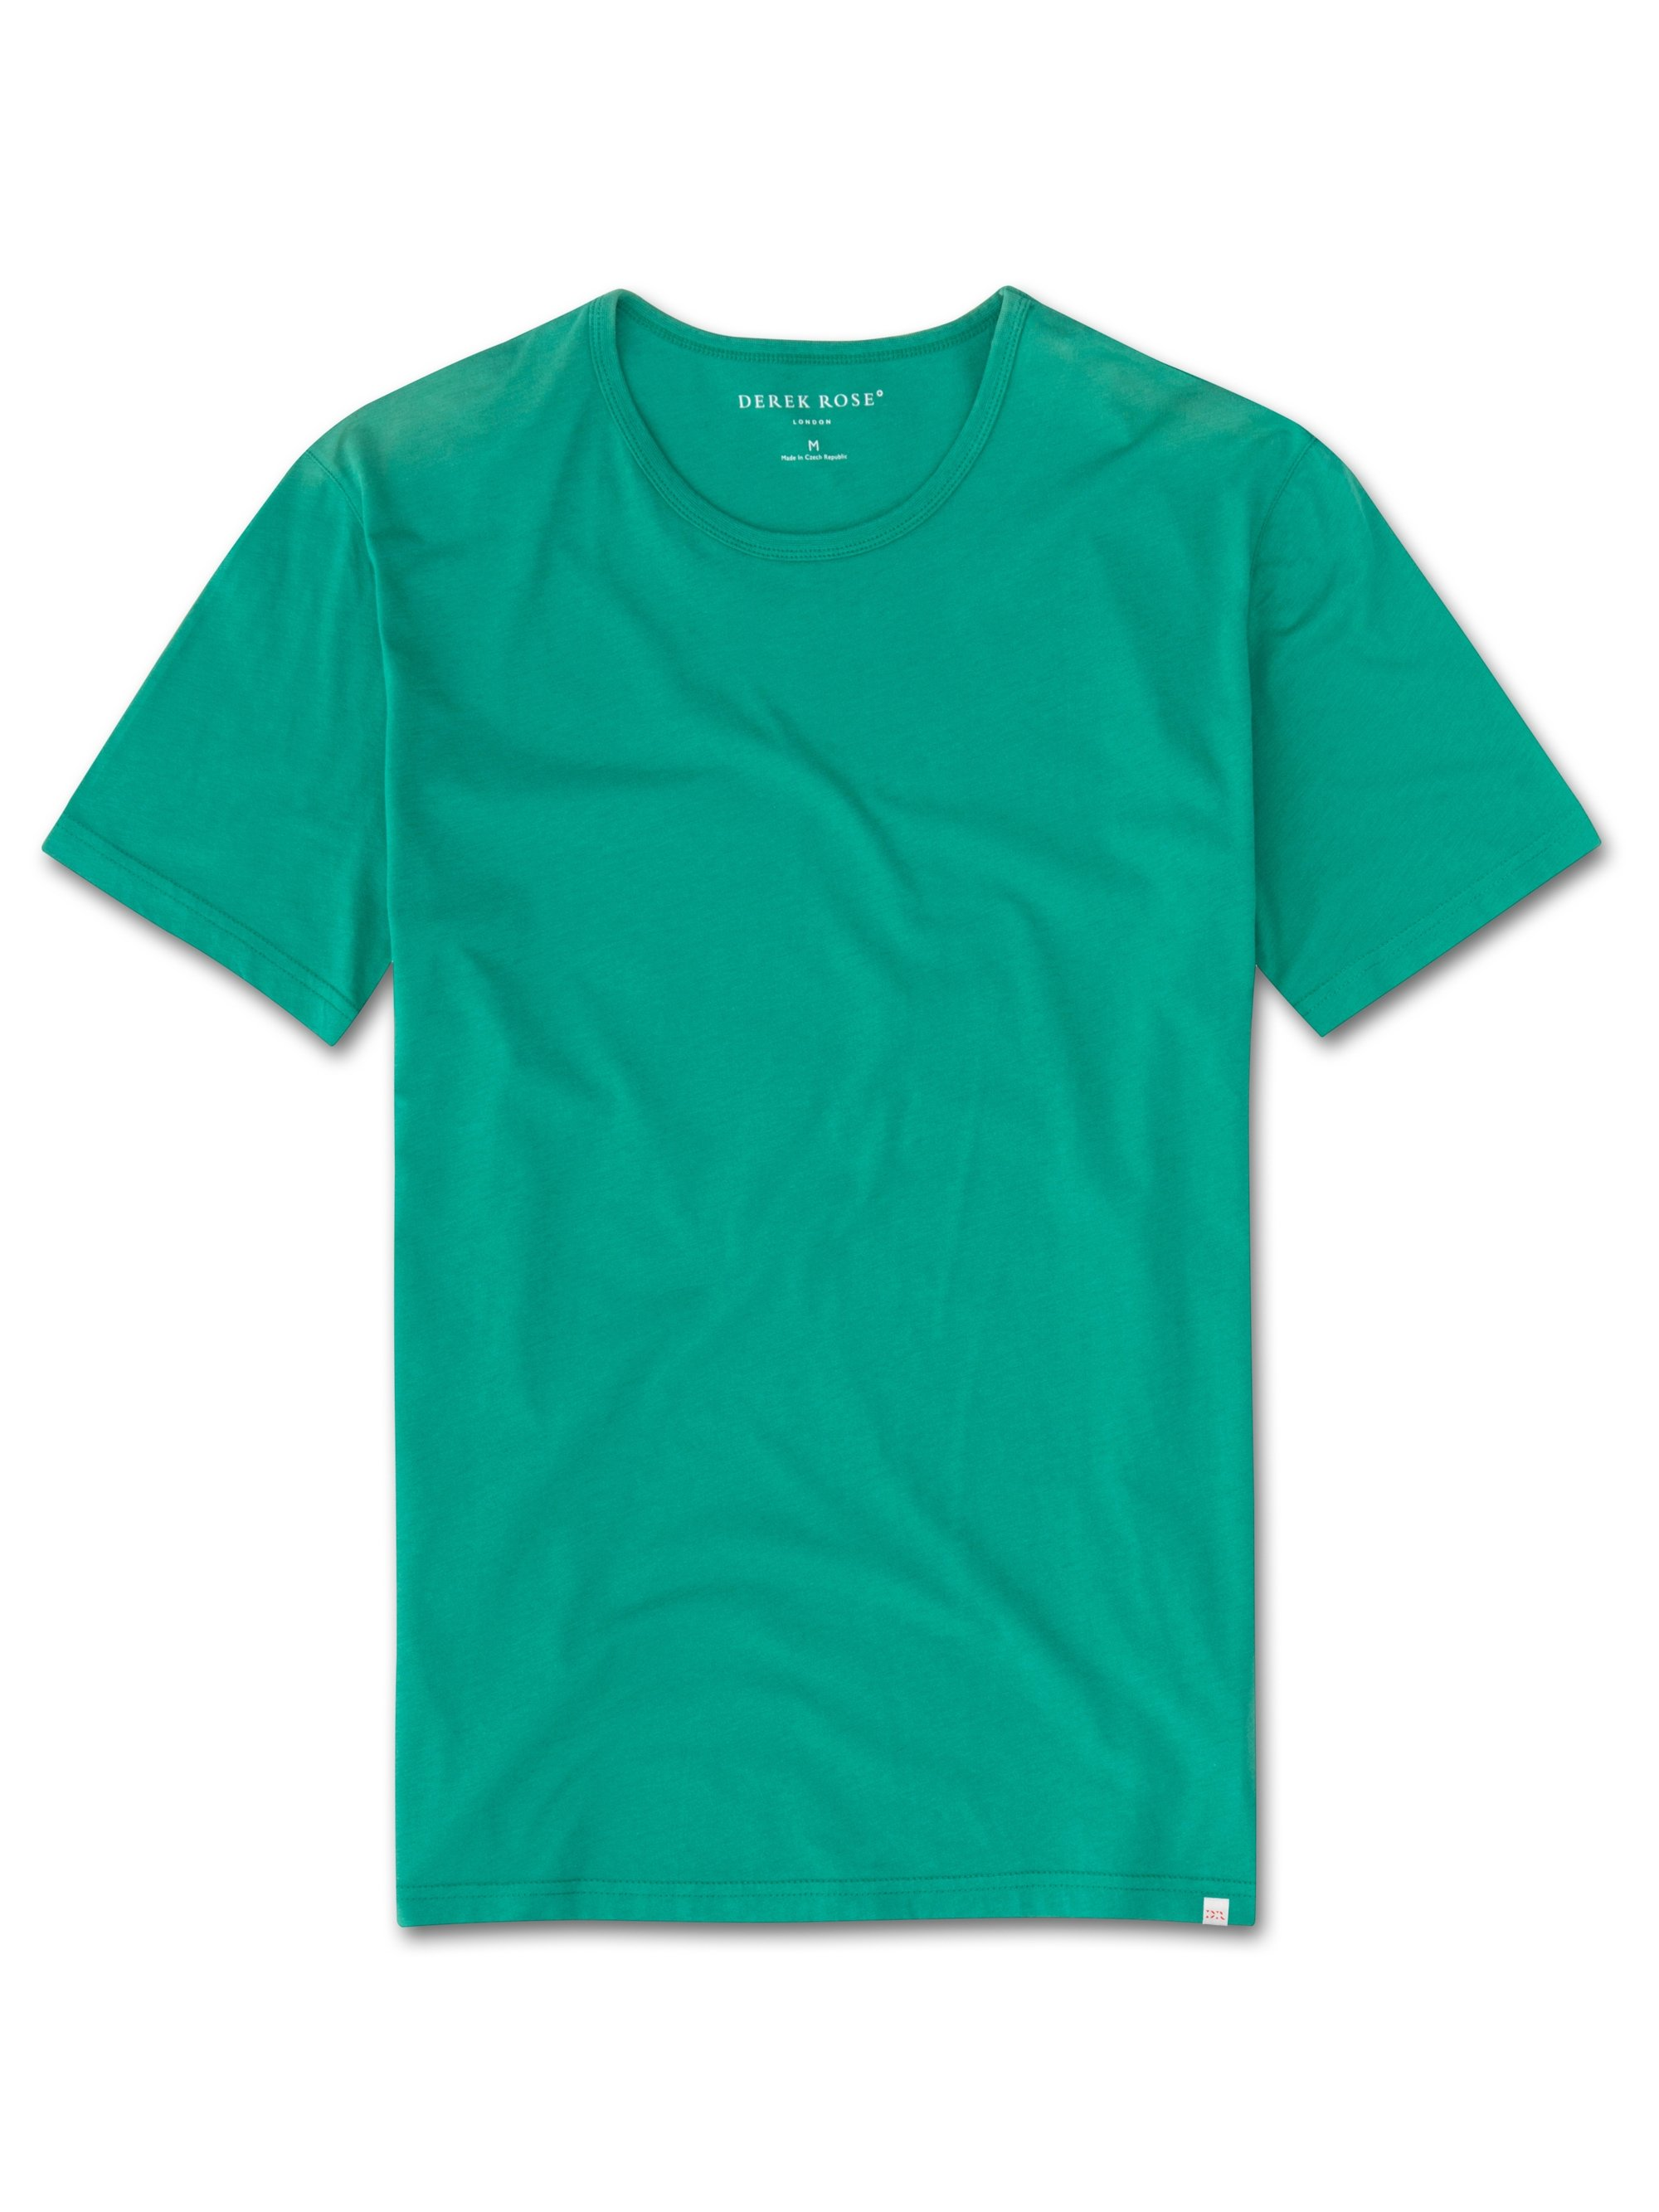 Men's Short Sleeve T-Shirt Riley Pima Cotton Green